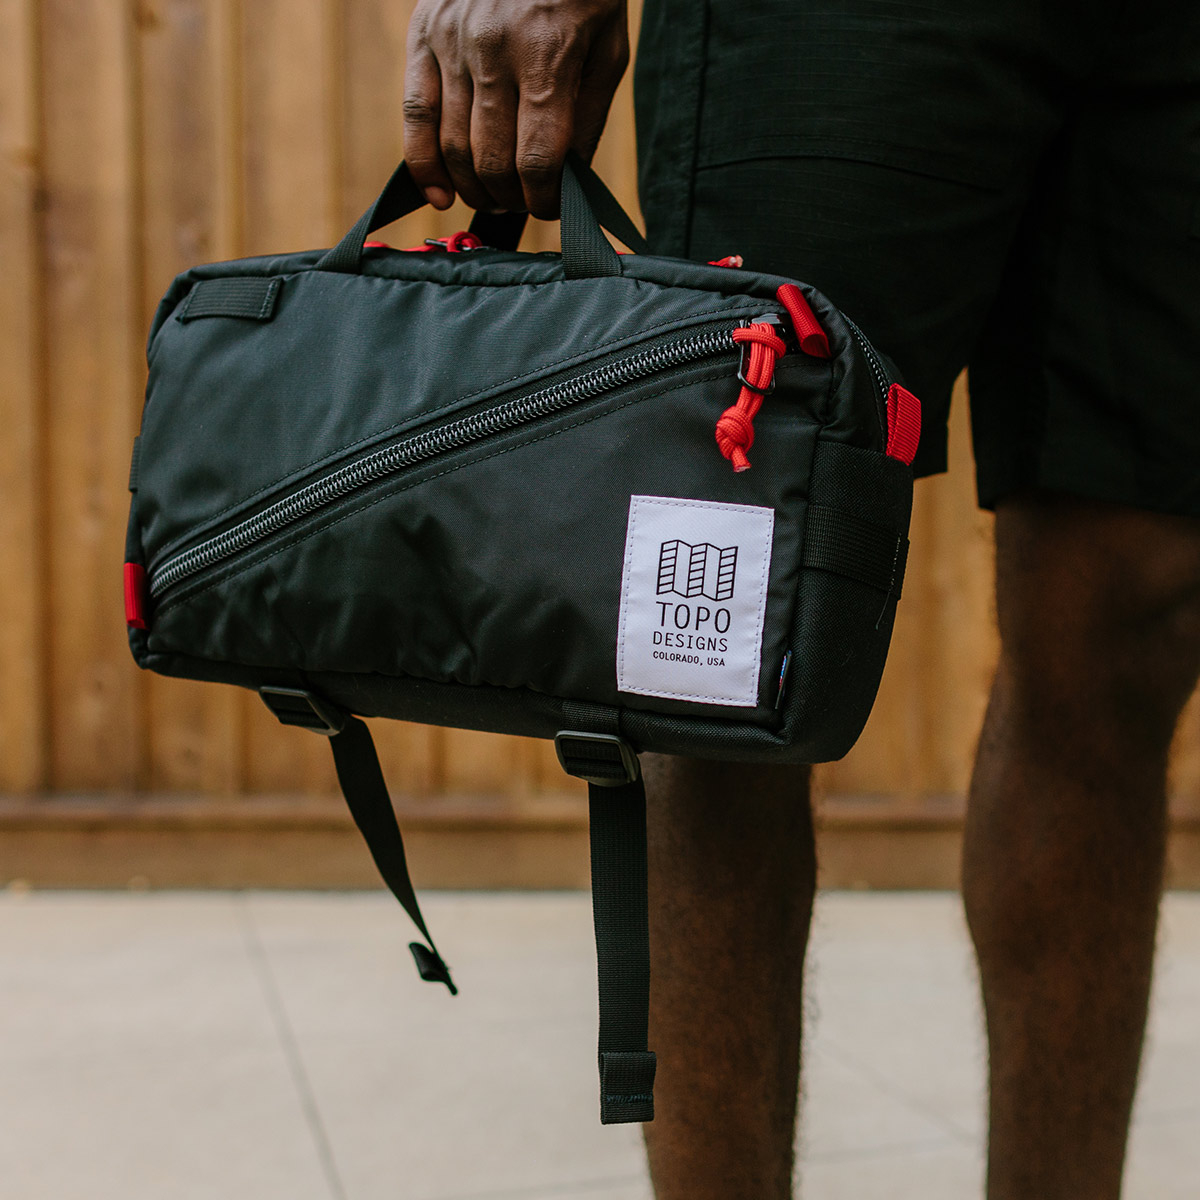 Topo Designs Quick Pack Black, a well-built, secure bag for travel